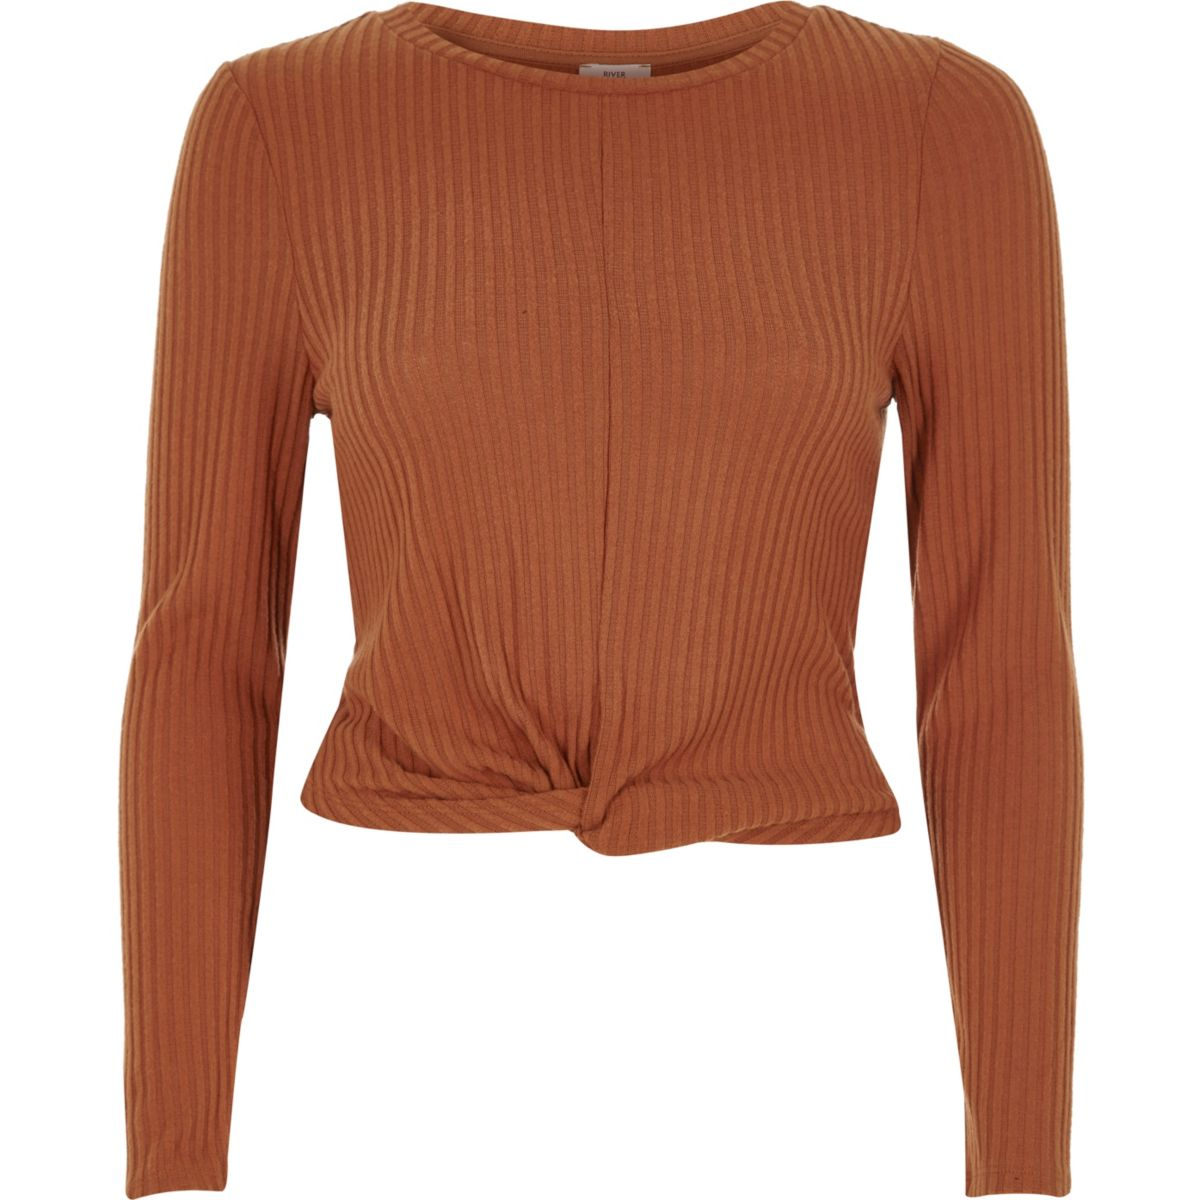 Tan brown ribbed twist front long sleeve top